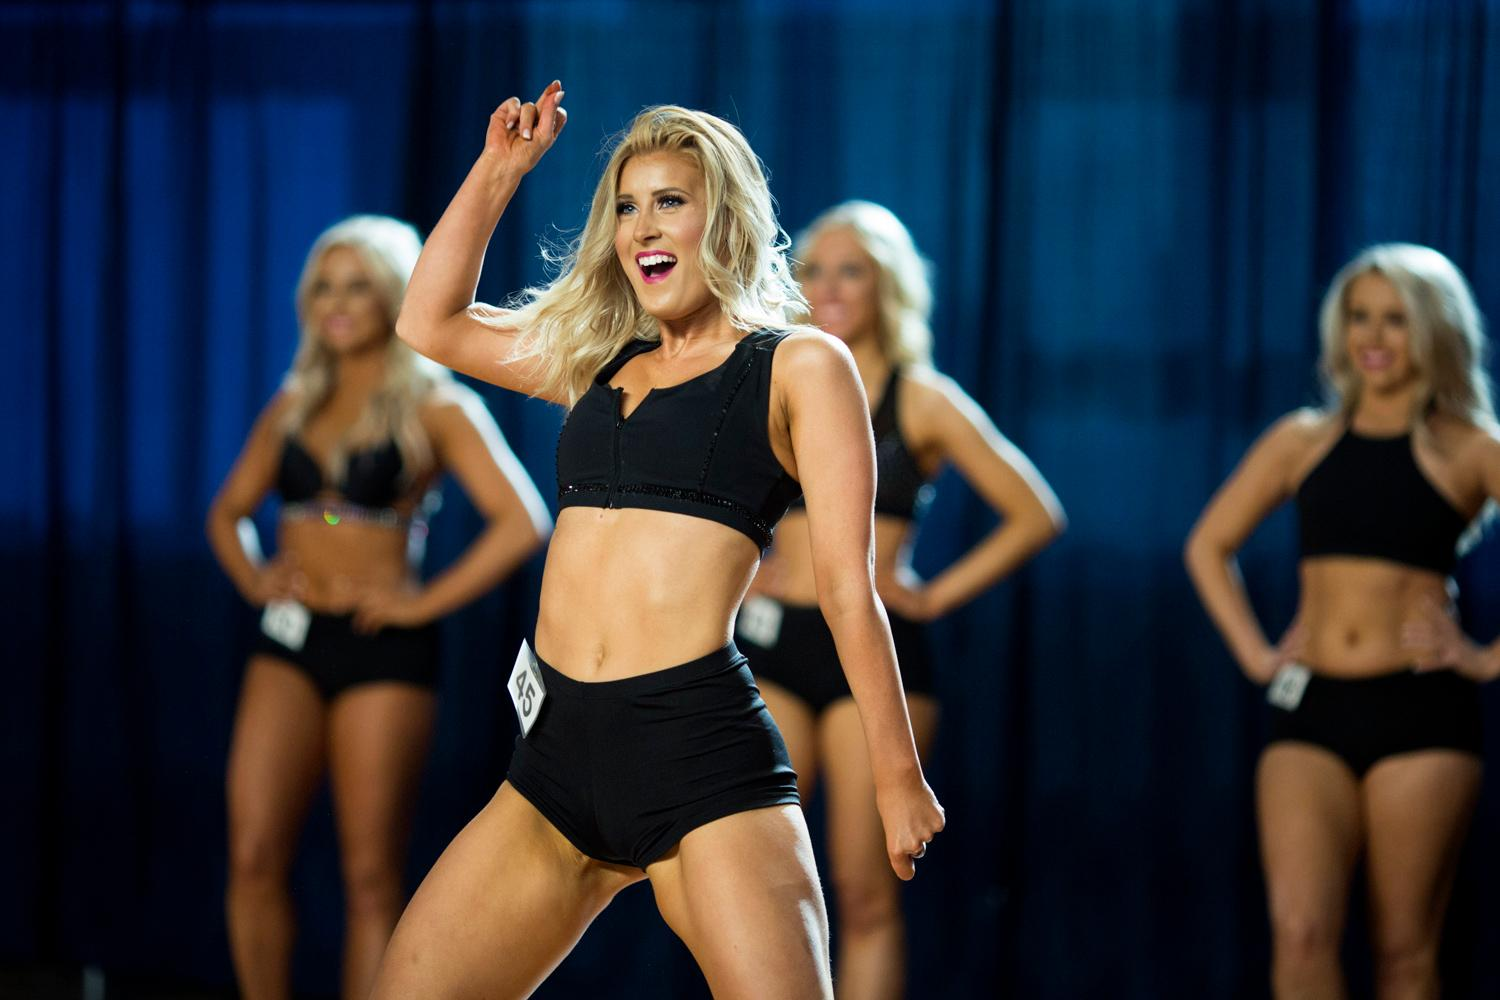 Dancers performed a choreographed routine and spoke briefly about themselves. The entire evening was live broadcasted on the Seahawks website. (Sy Bean / Seattle Refined)